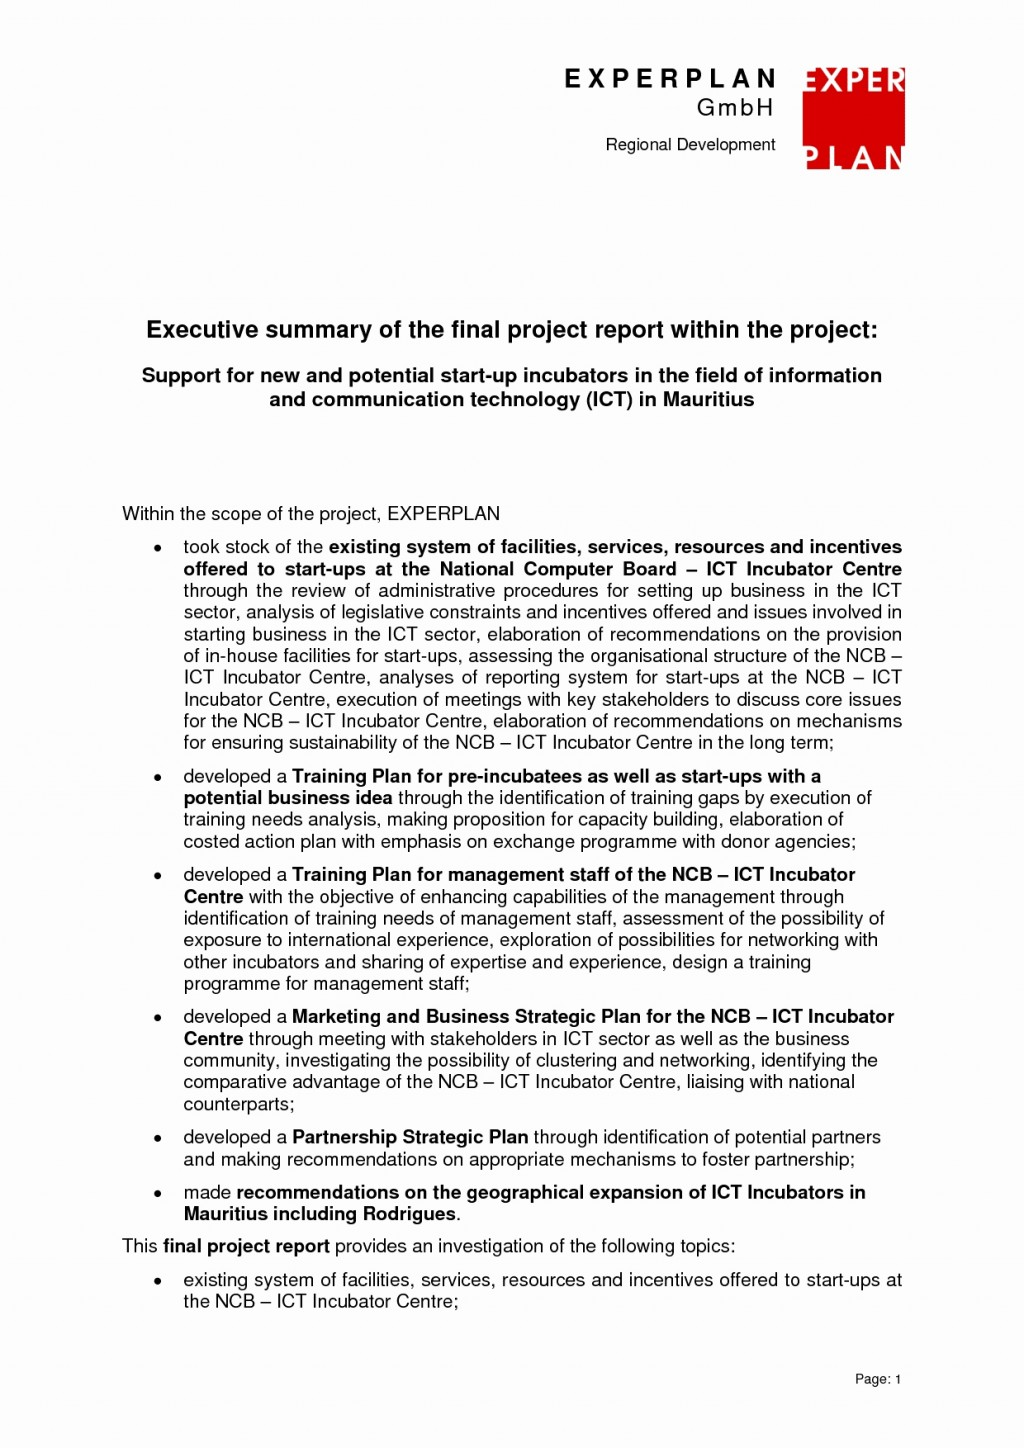 006 Research Paper 20project Management Summary Template Plan Executive Example Luxury Experience Linkedin20 Of Fantastic A Large